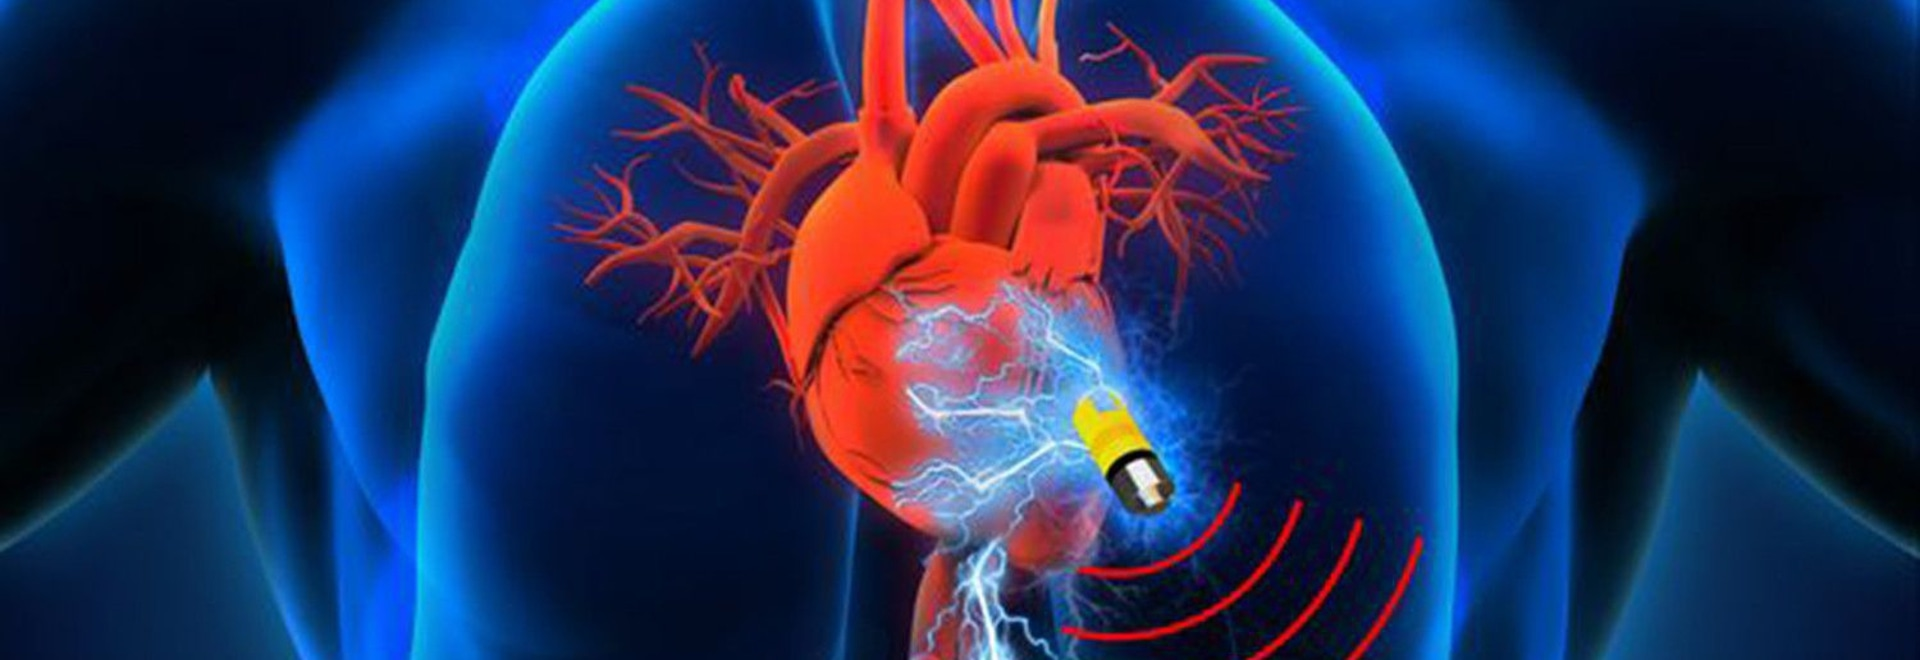 Batteries Not Included: New Implant Tech Uses Energy From Human Body